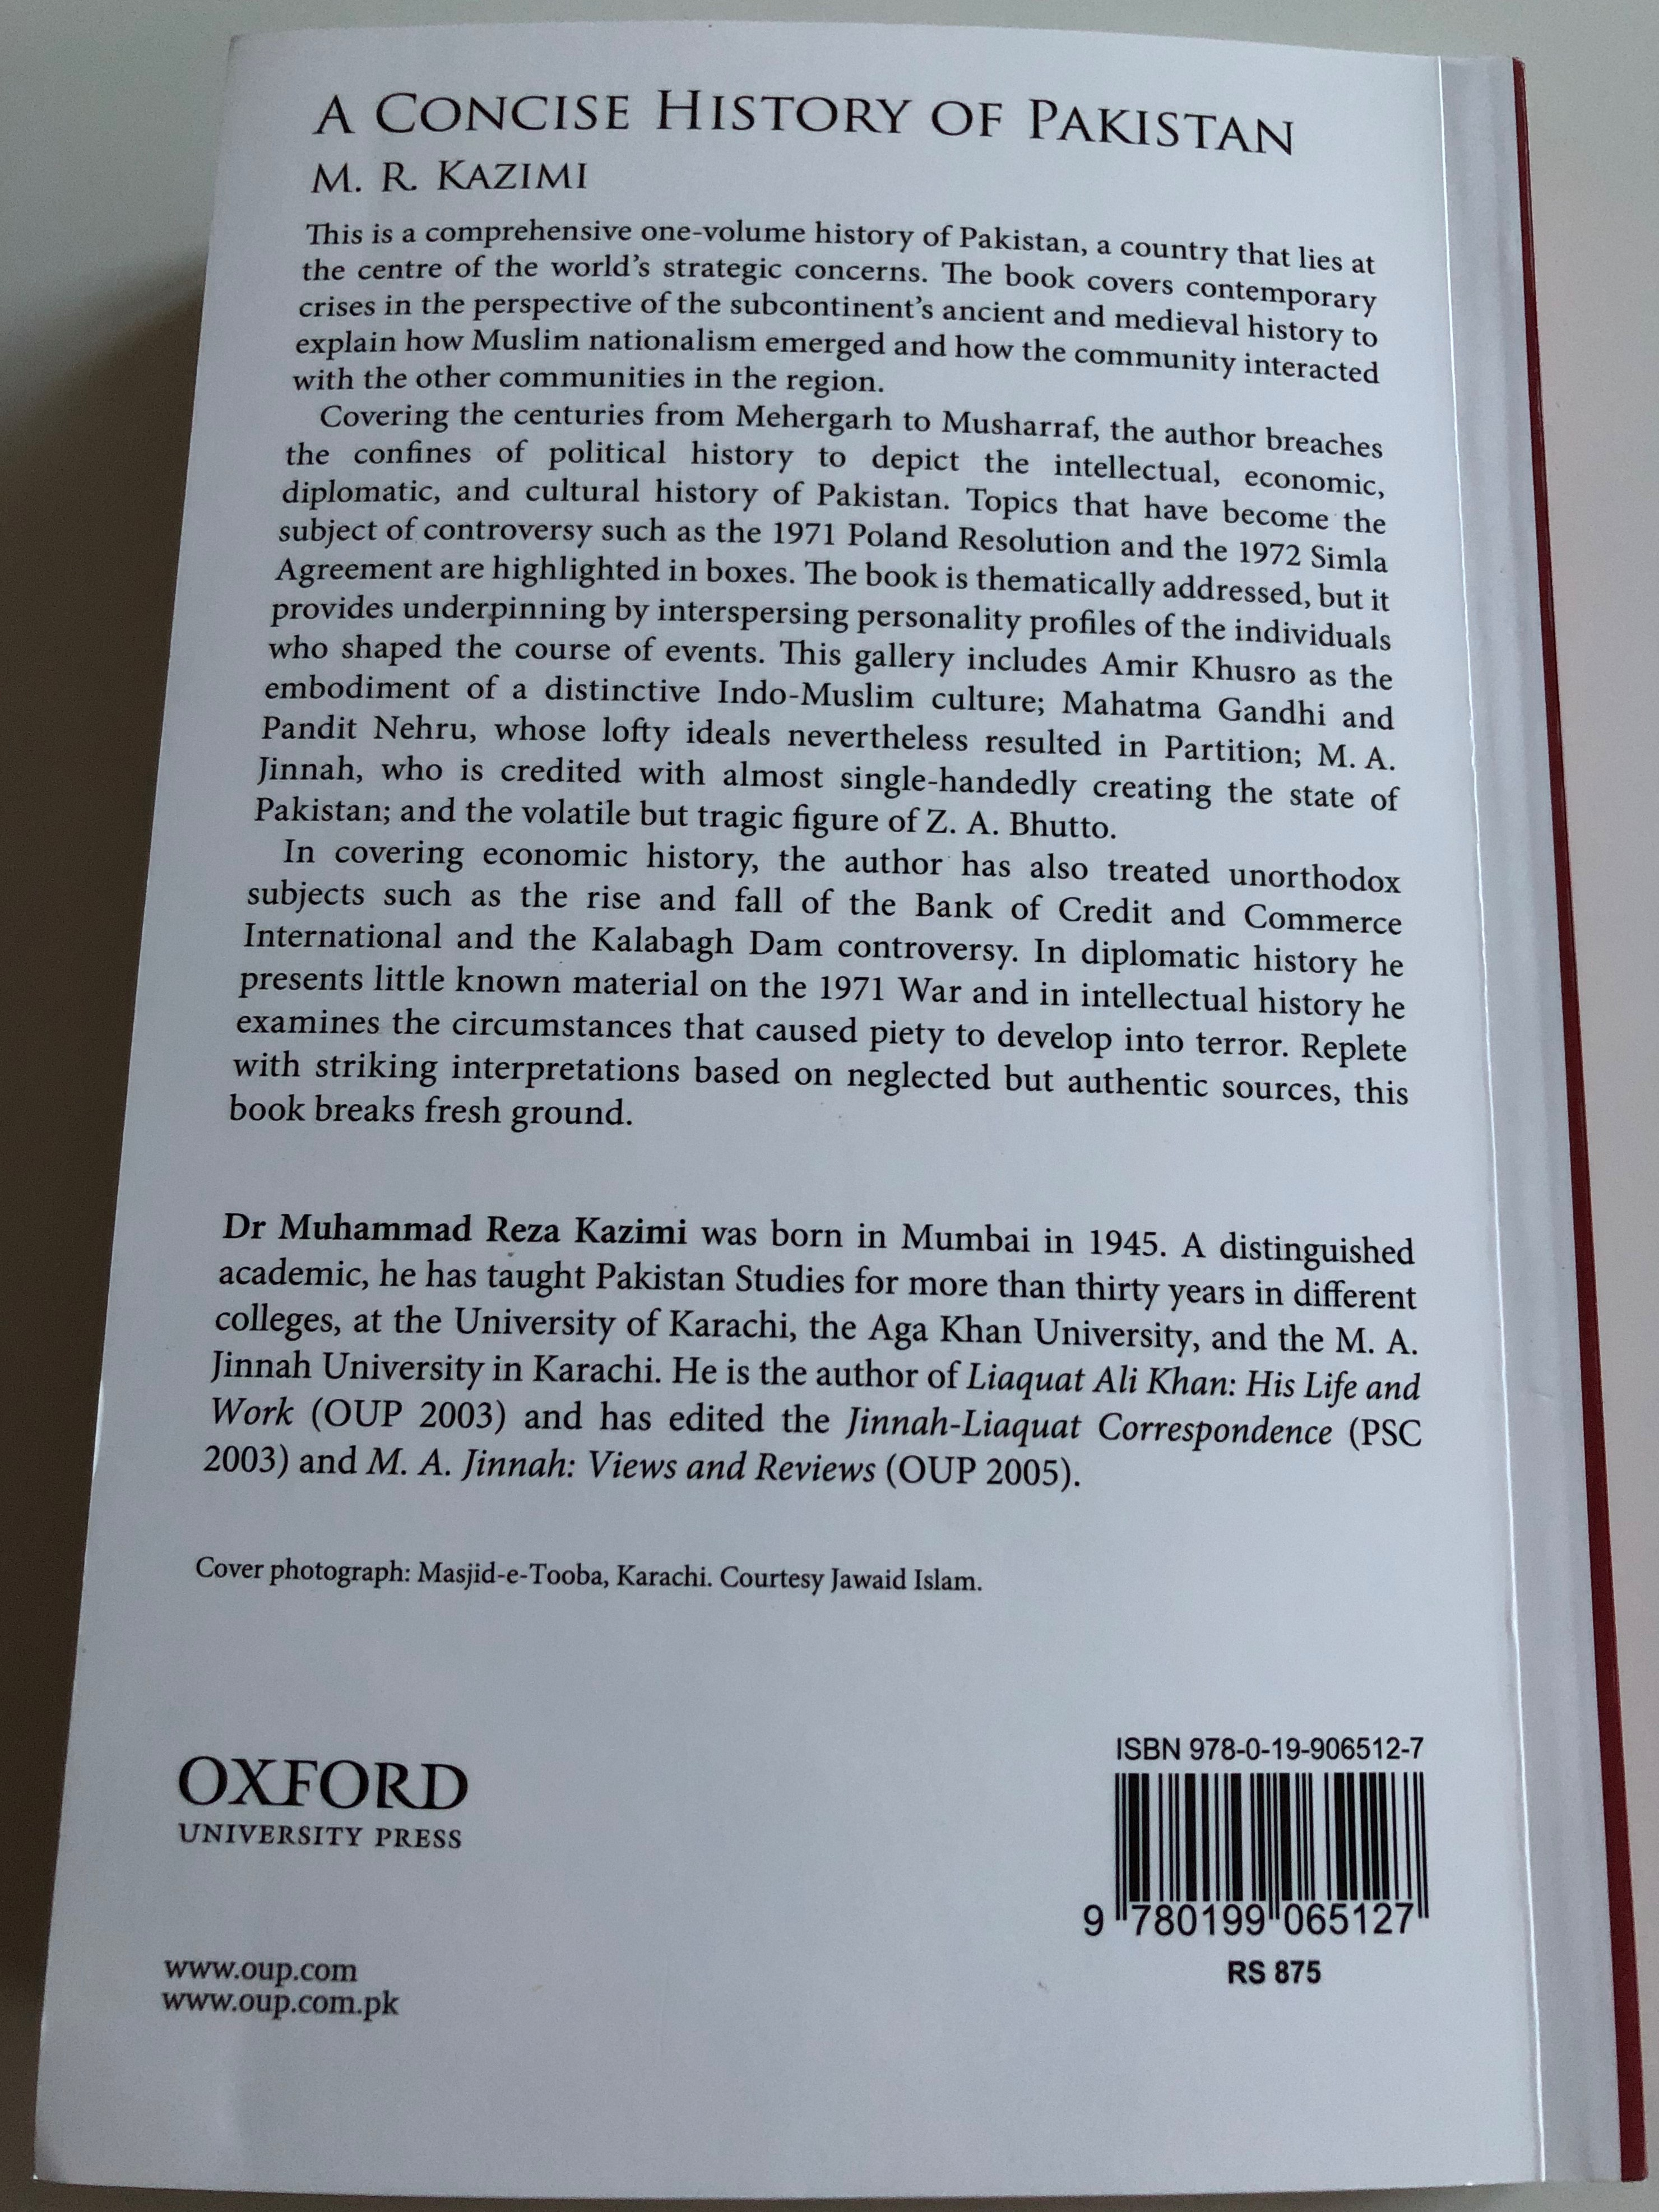 a-concise-history-of-pakistan-by-m.r.-kazimi-oxford-university-press-2019-11-.jpg